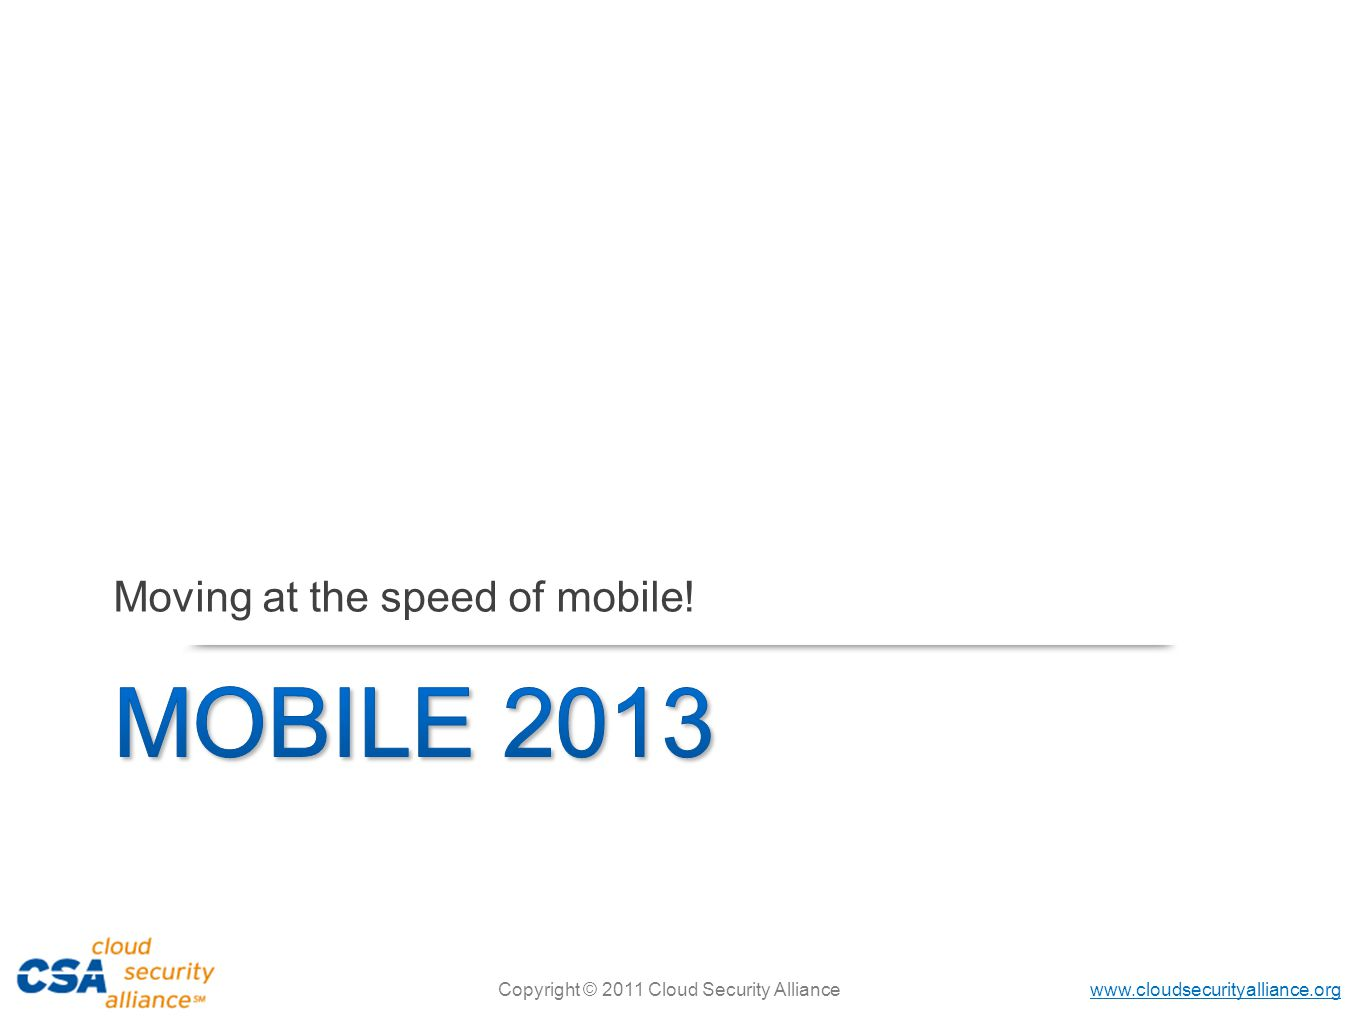 www.cloudsecurityalliance.org Copyright © 2011 Cloud Security Alliance Moving at the speed of mobile!